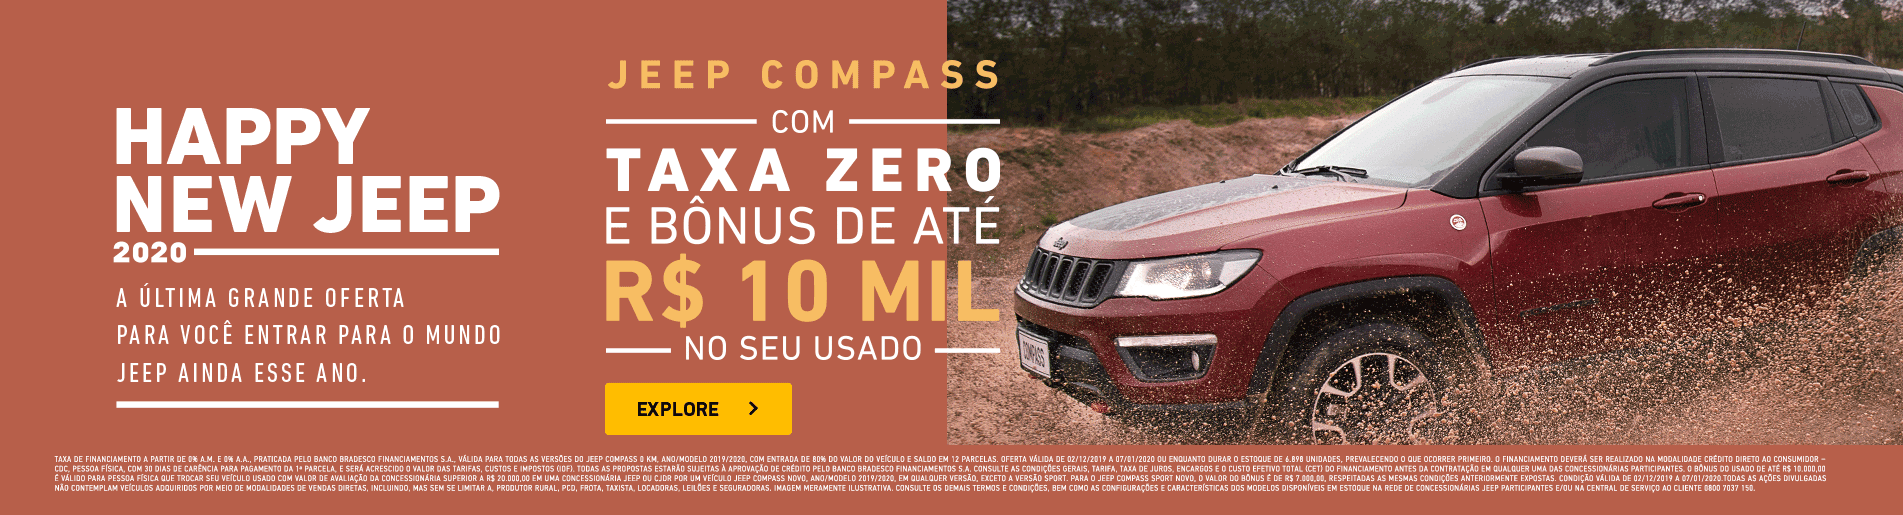 Jeep Compass Happy New Jeep - Fipal Jeep